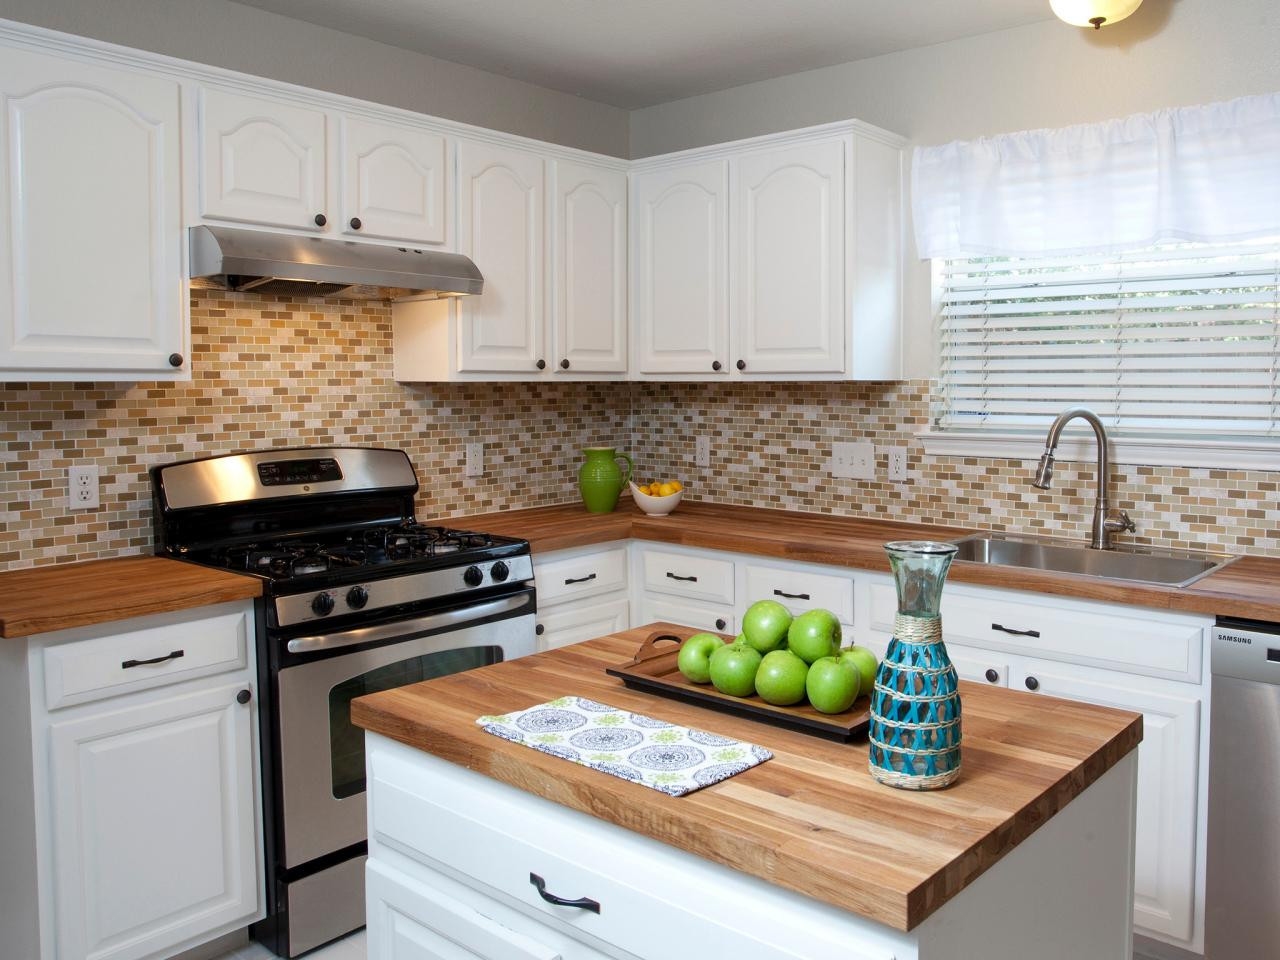 Wood kitchen countertops hgtv for Kitchen countertops